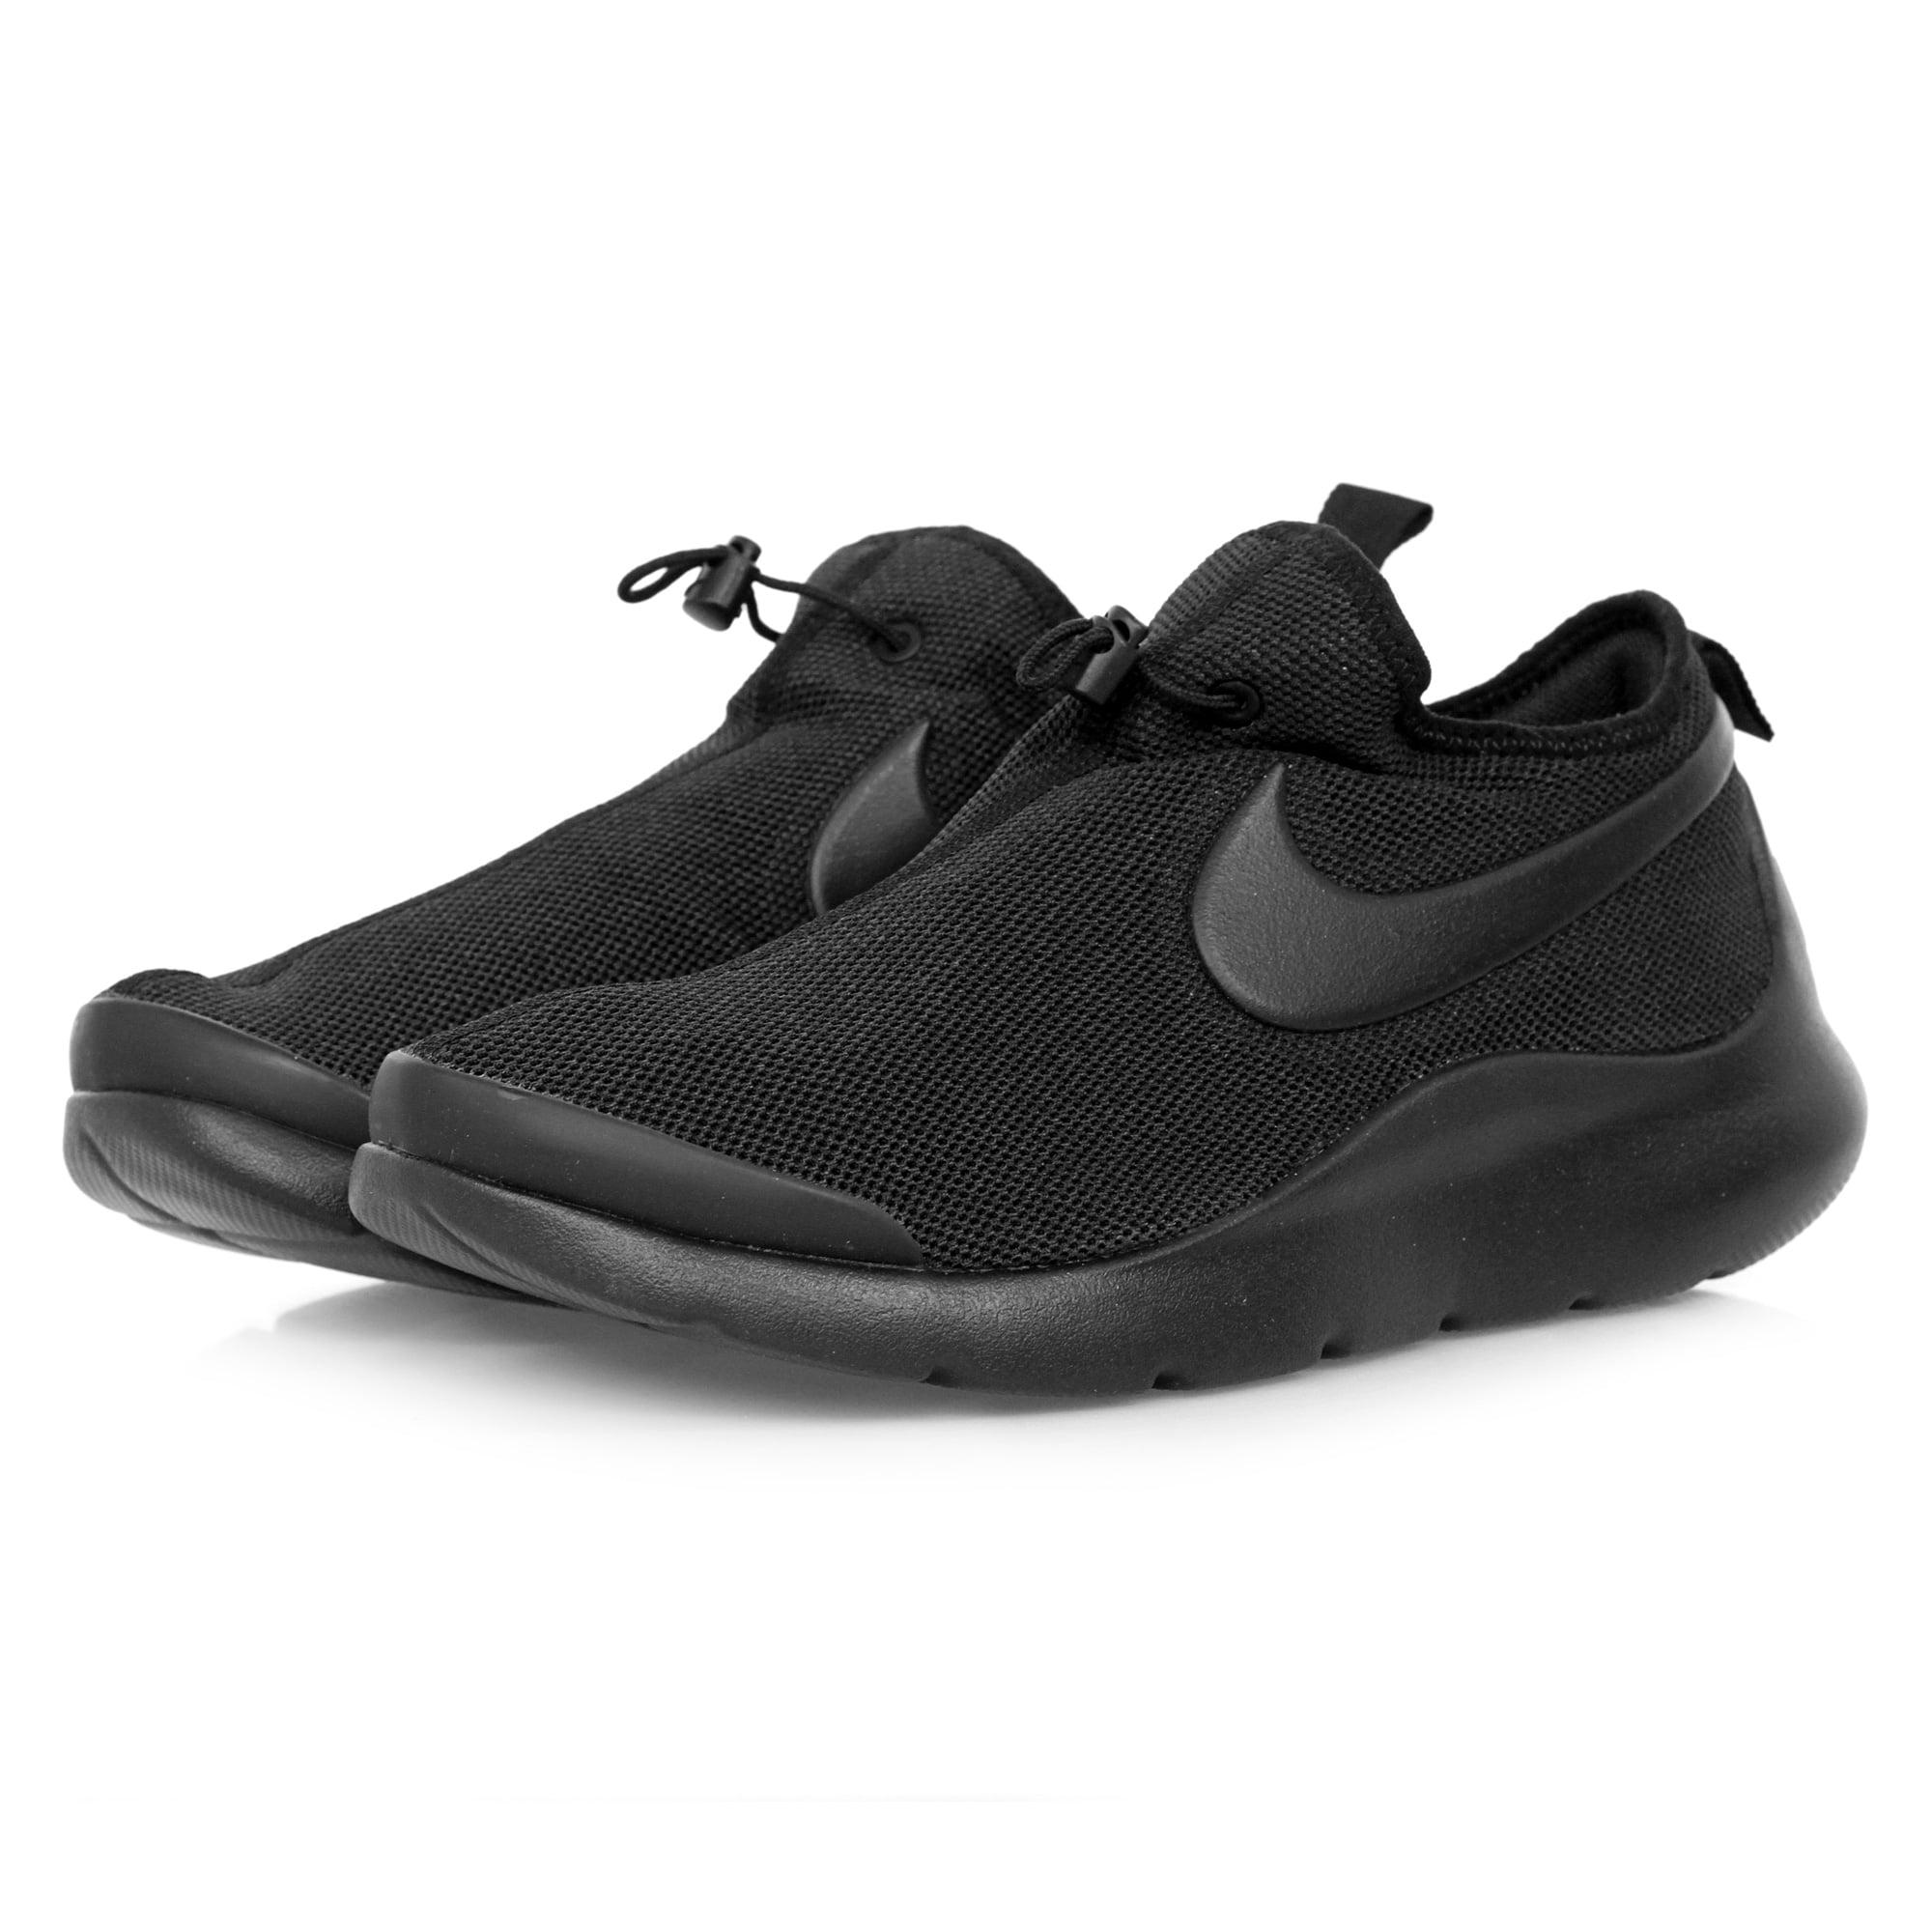 new styles c10f6 21ee0 ... real nike aptare se triple black shoe 881988 004 in black for men lyst  57640 546bc